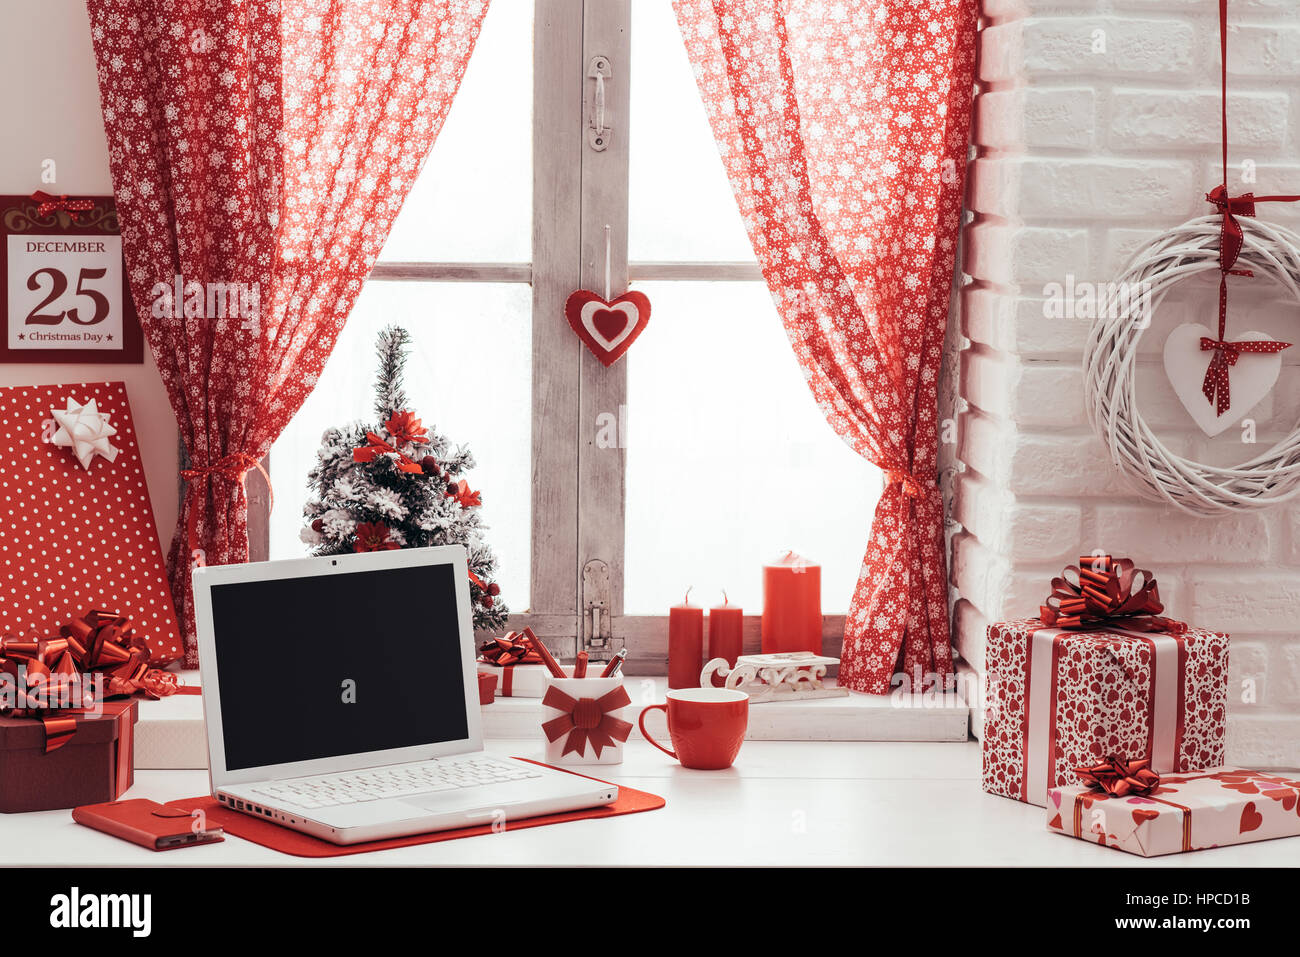 home interior with red christmas decorations calendar and laptop